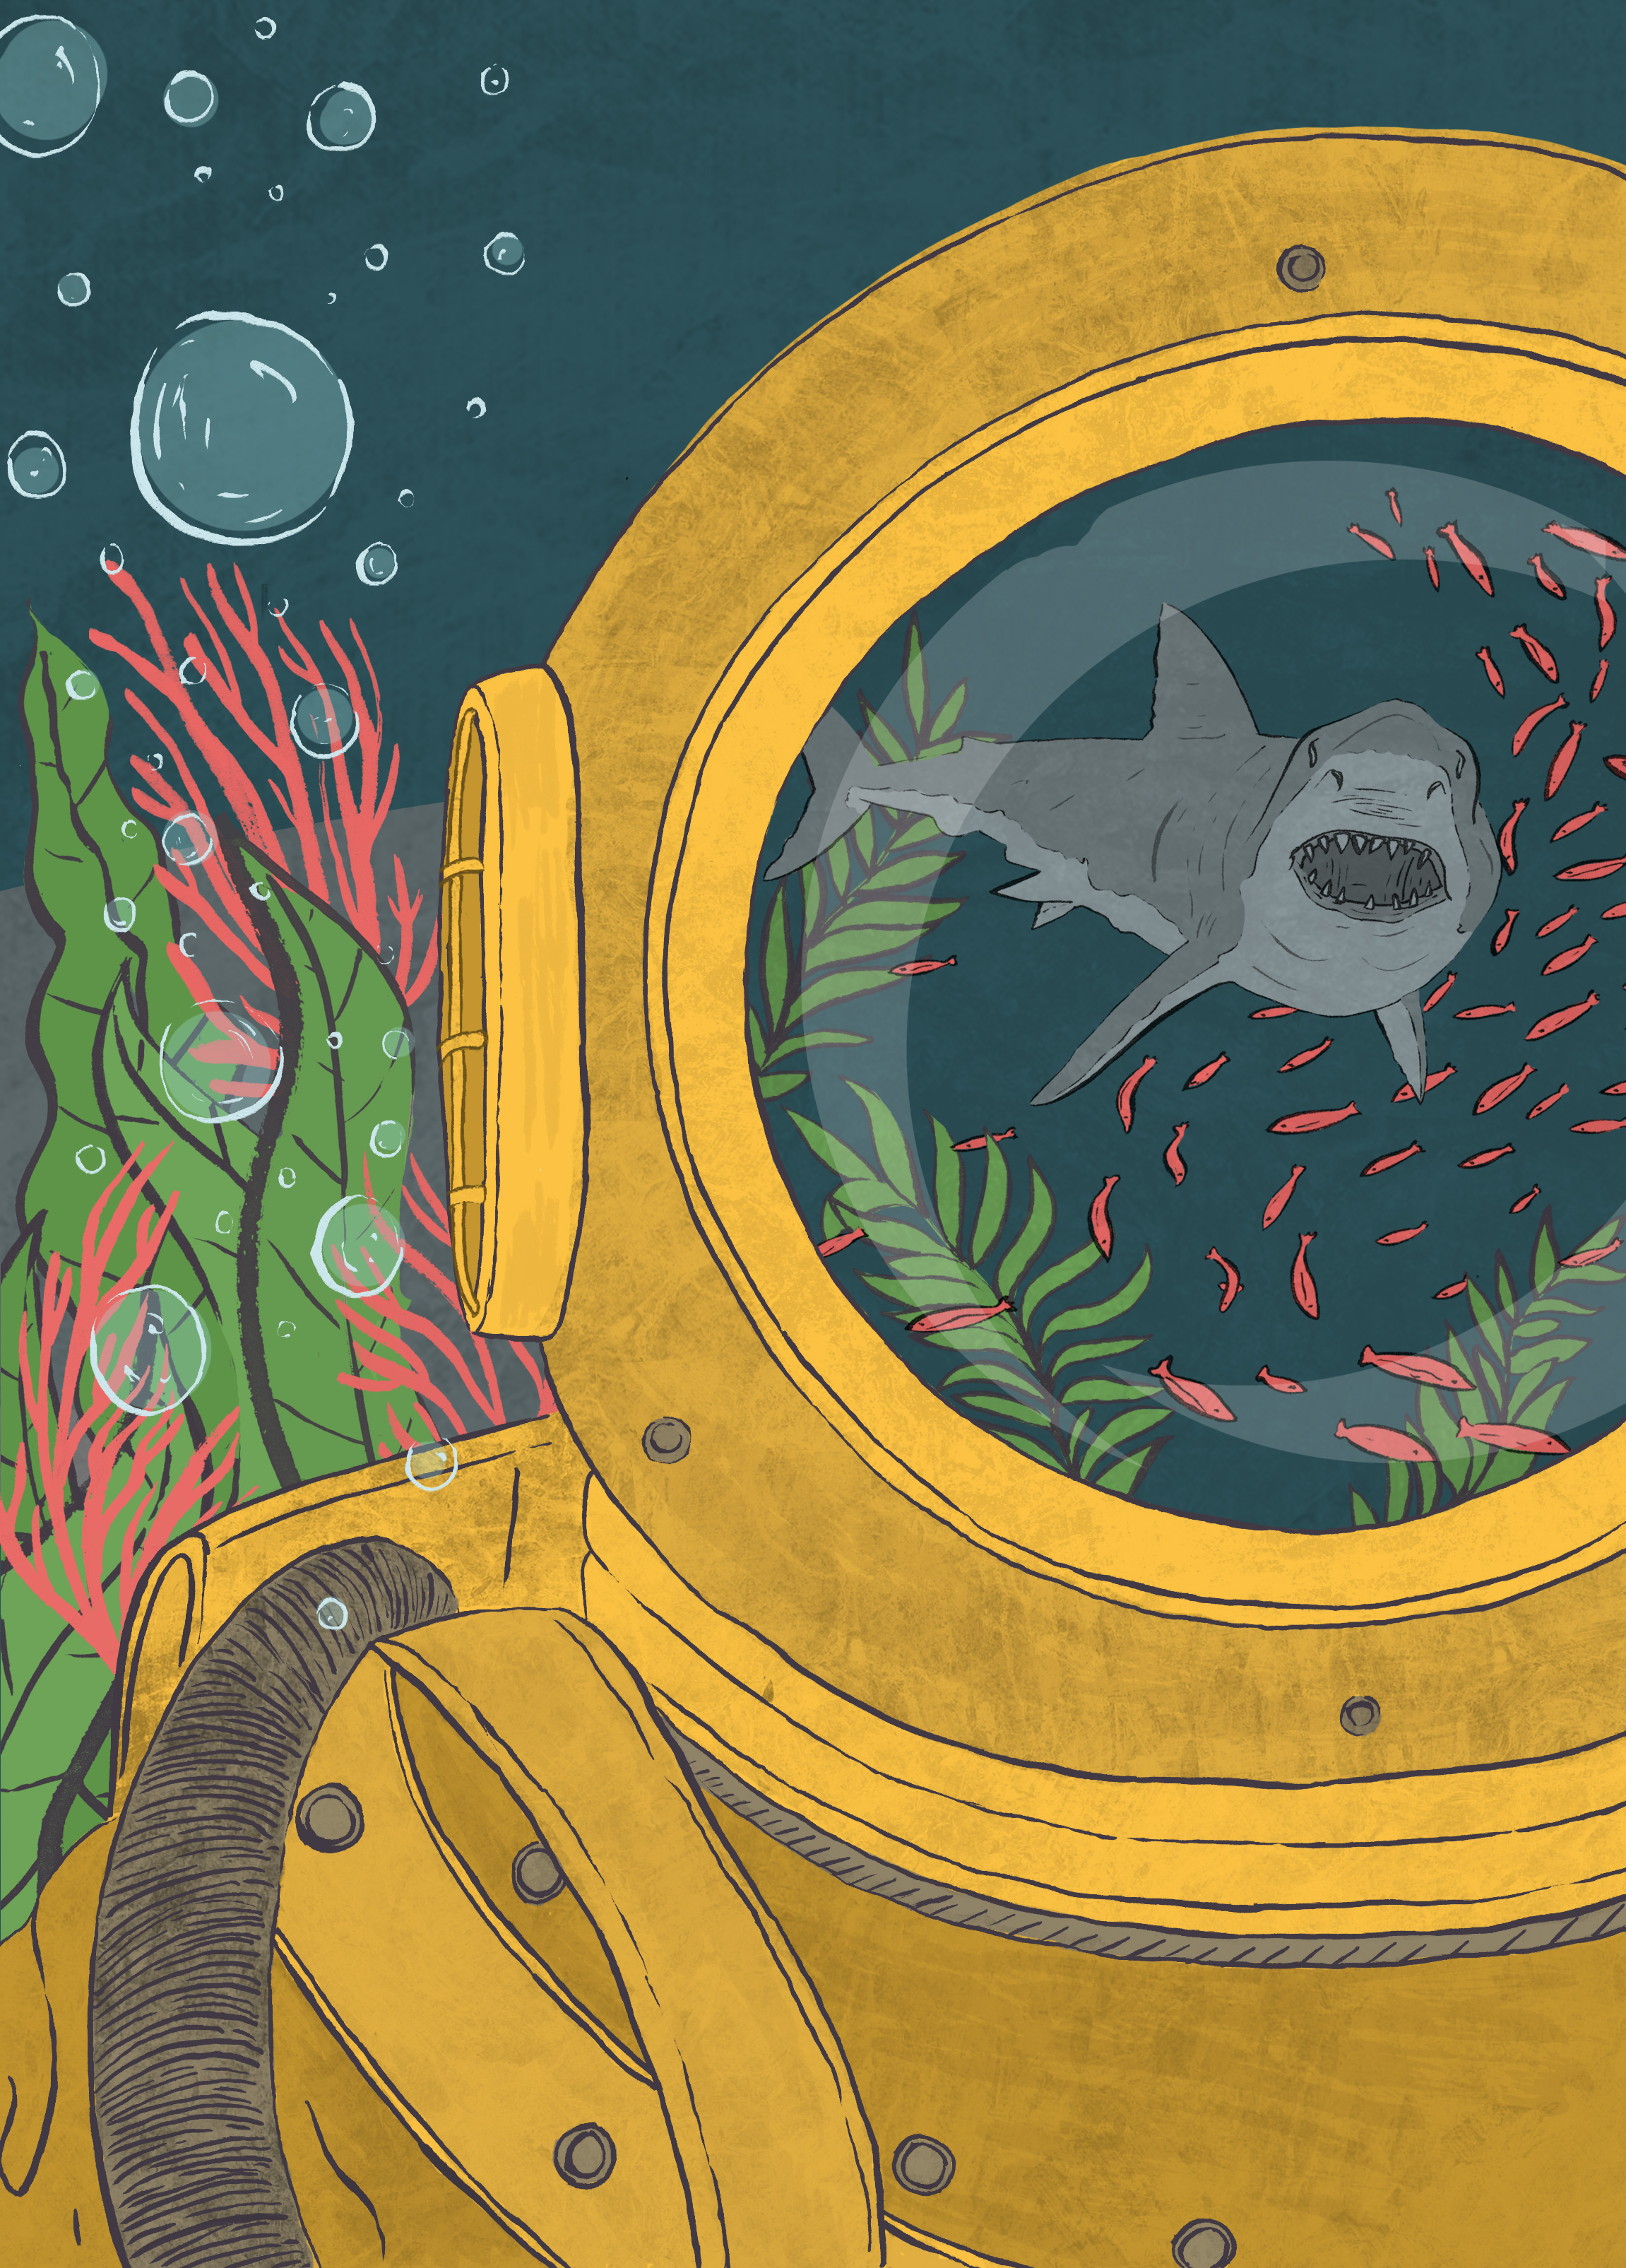 Shark attack! - The final illustration is of Captain Nemo's doomed diver, the moment before the shark attack. With the reflection of his helmet showing his impending doom.